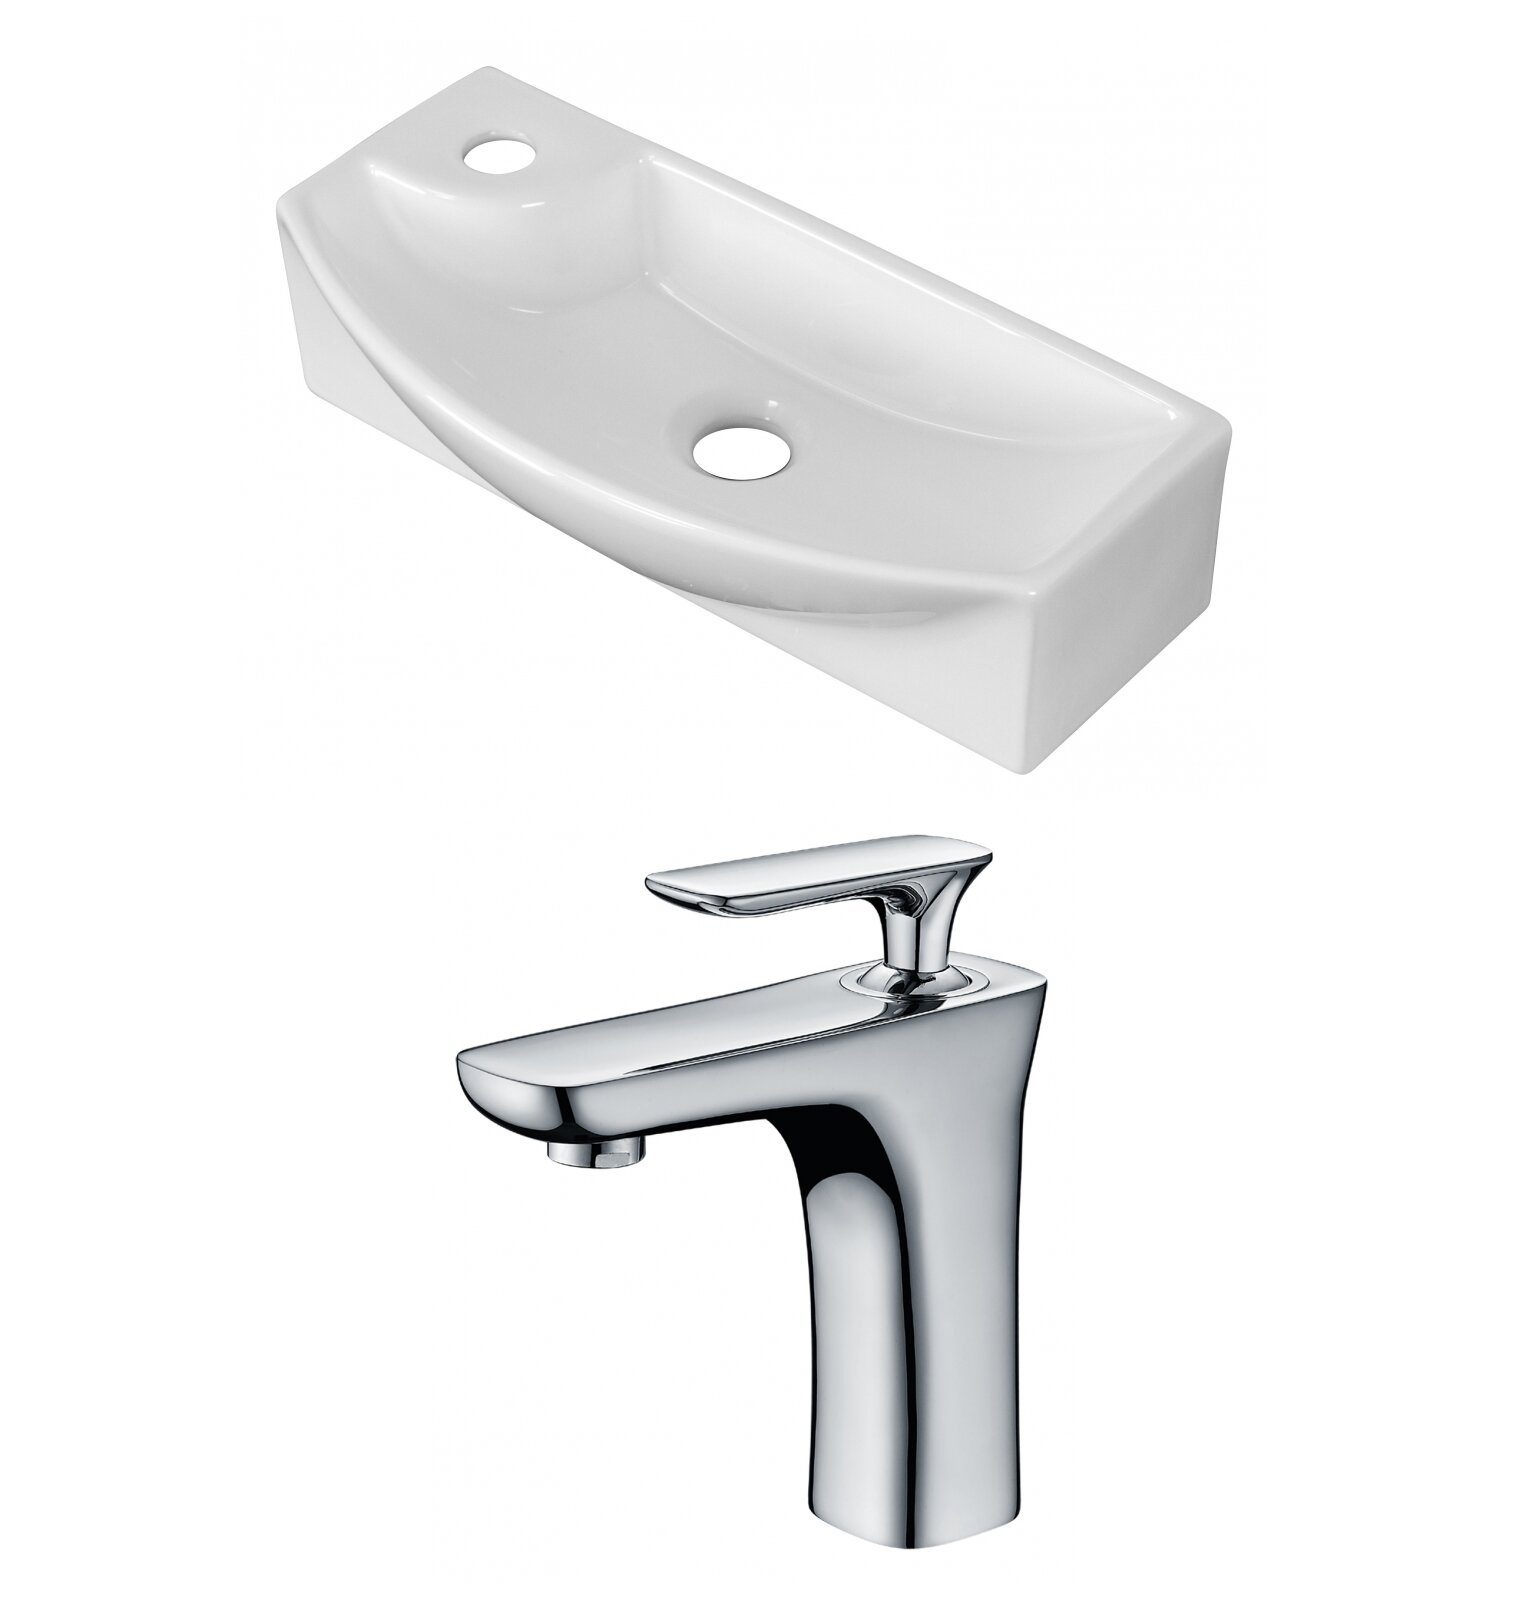 Avanities Ceramic Specialty Vessel Bathroom Sink With Faucet And Overflow